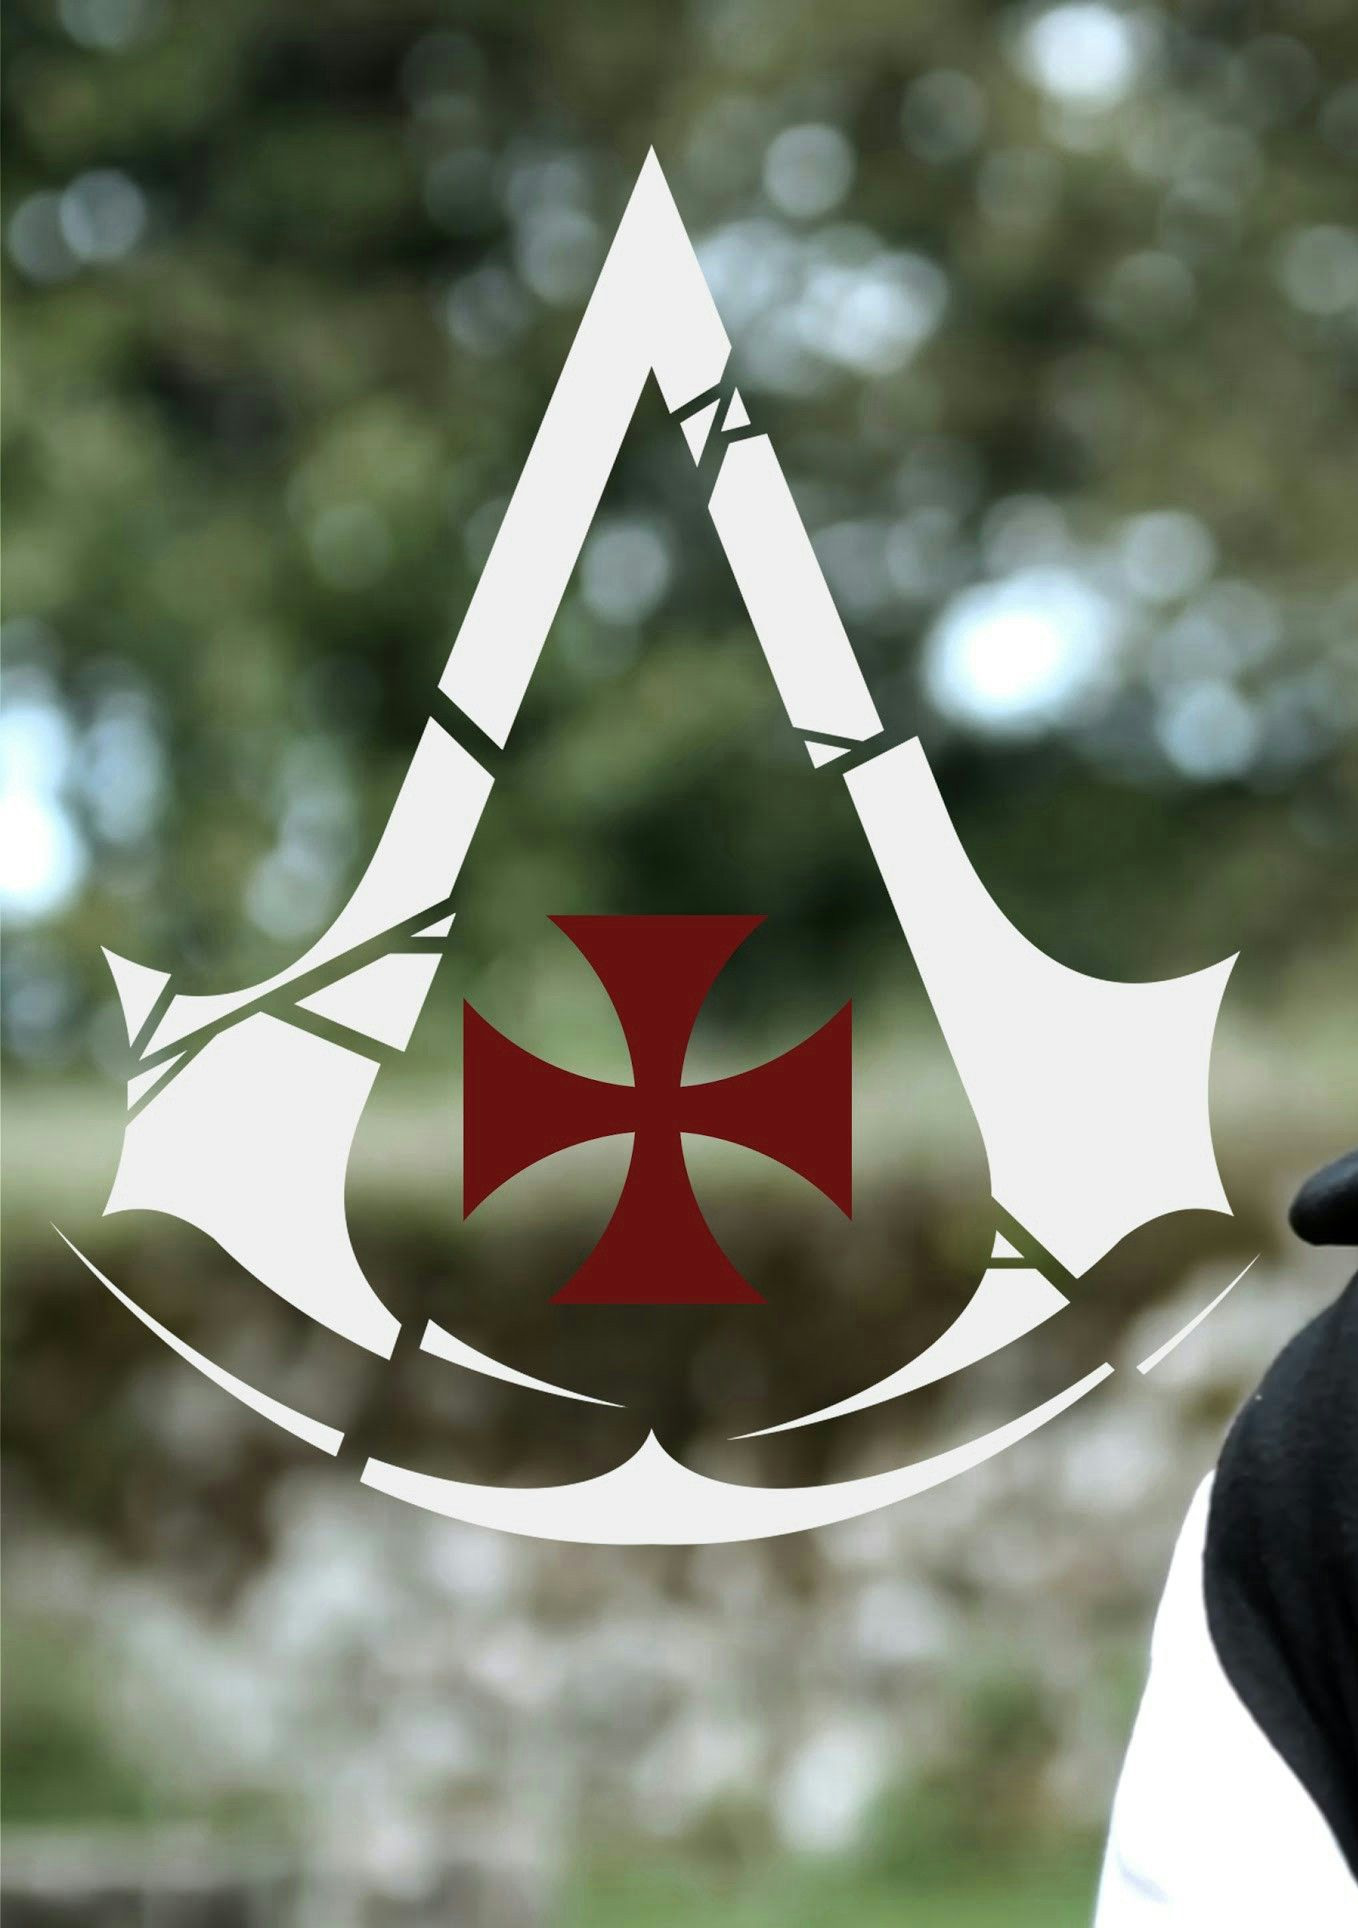 Pin By Ben Gorbachev On Assassin S Creed Assassins Creed Tattoo